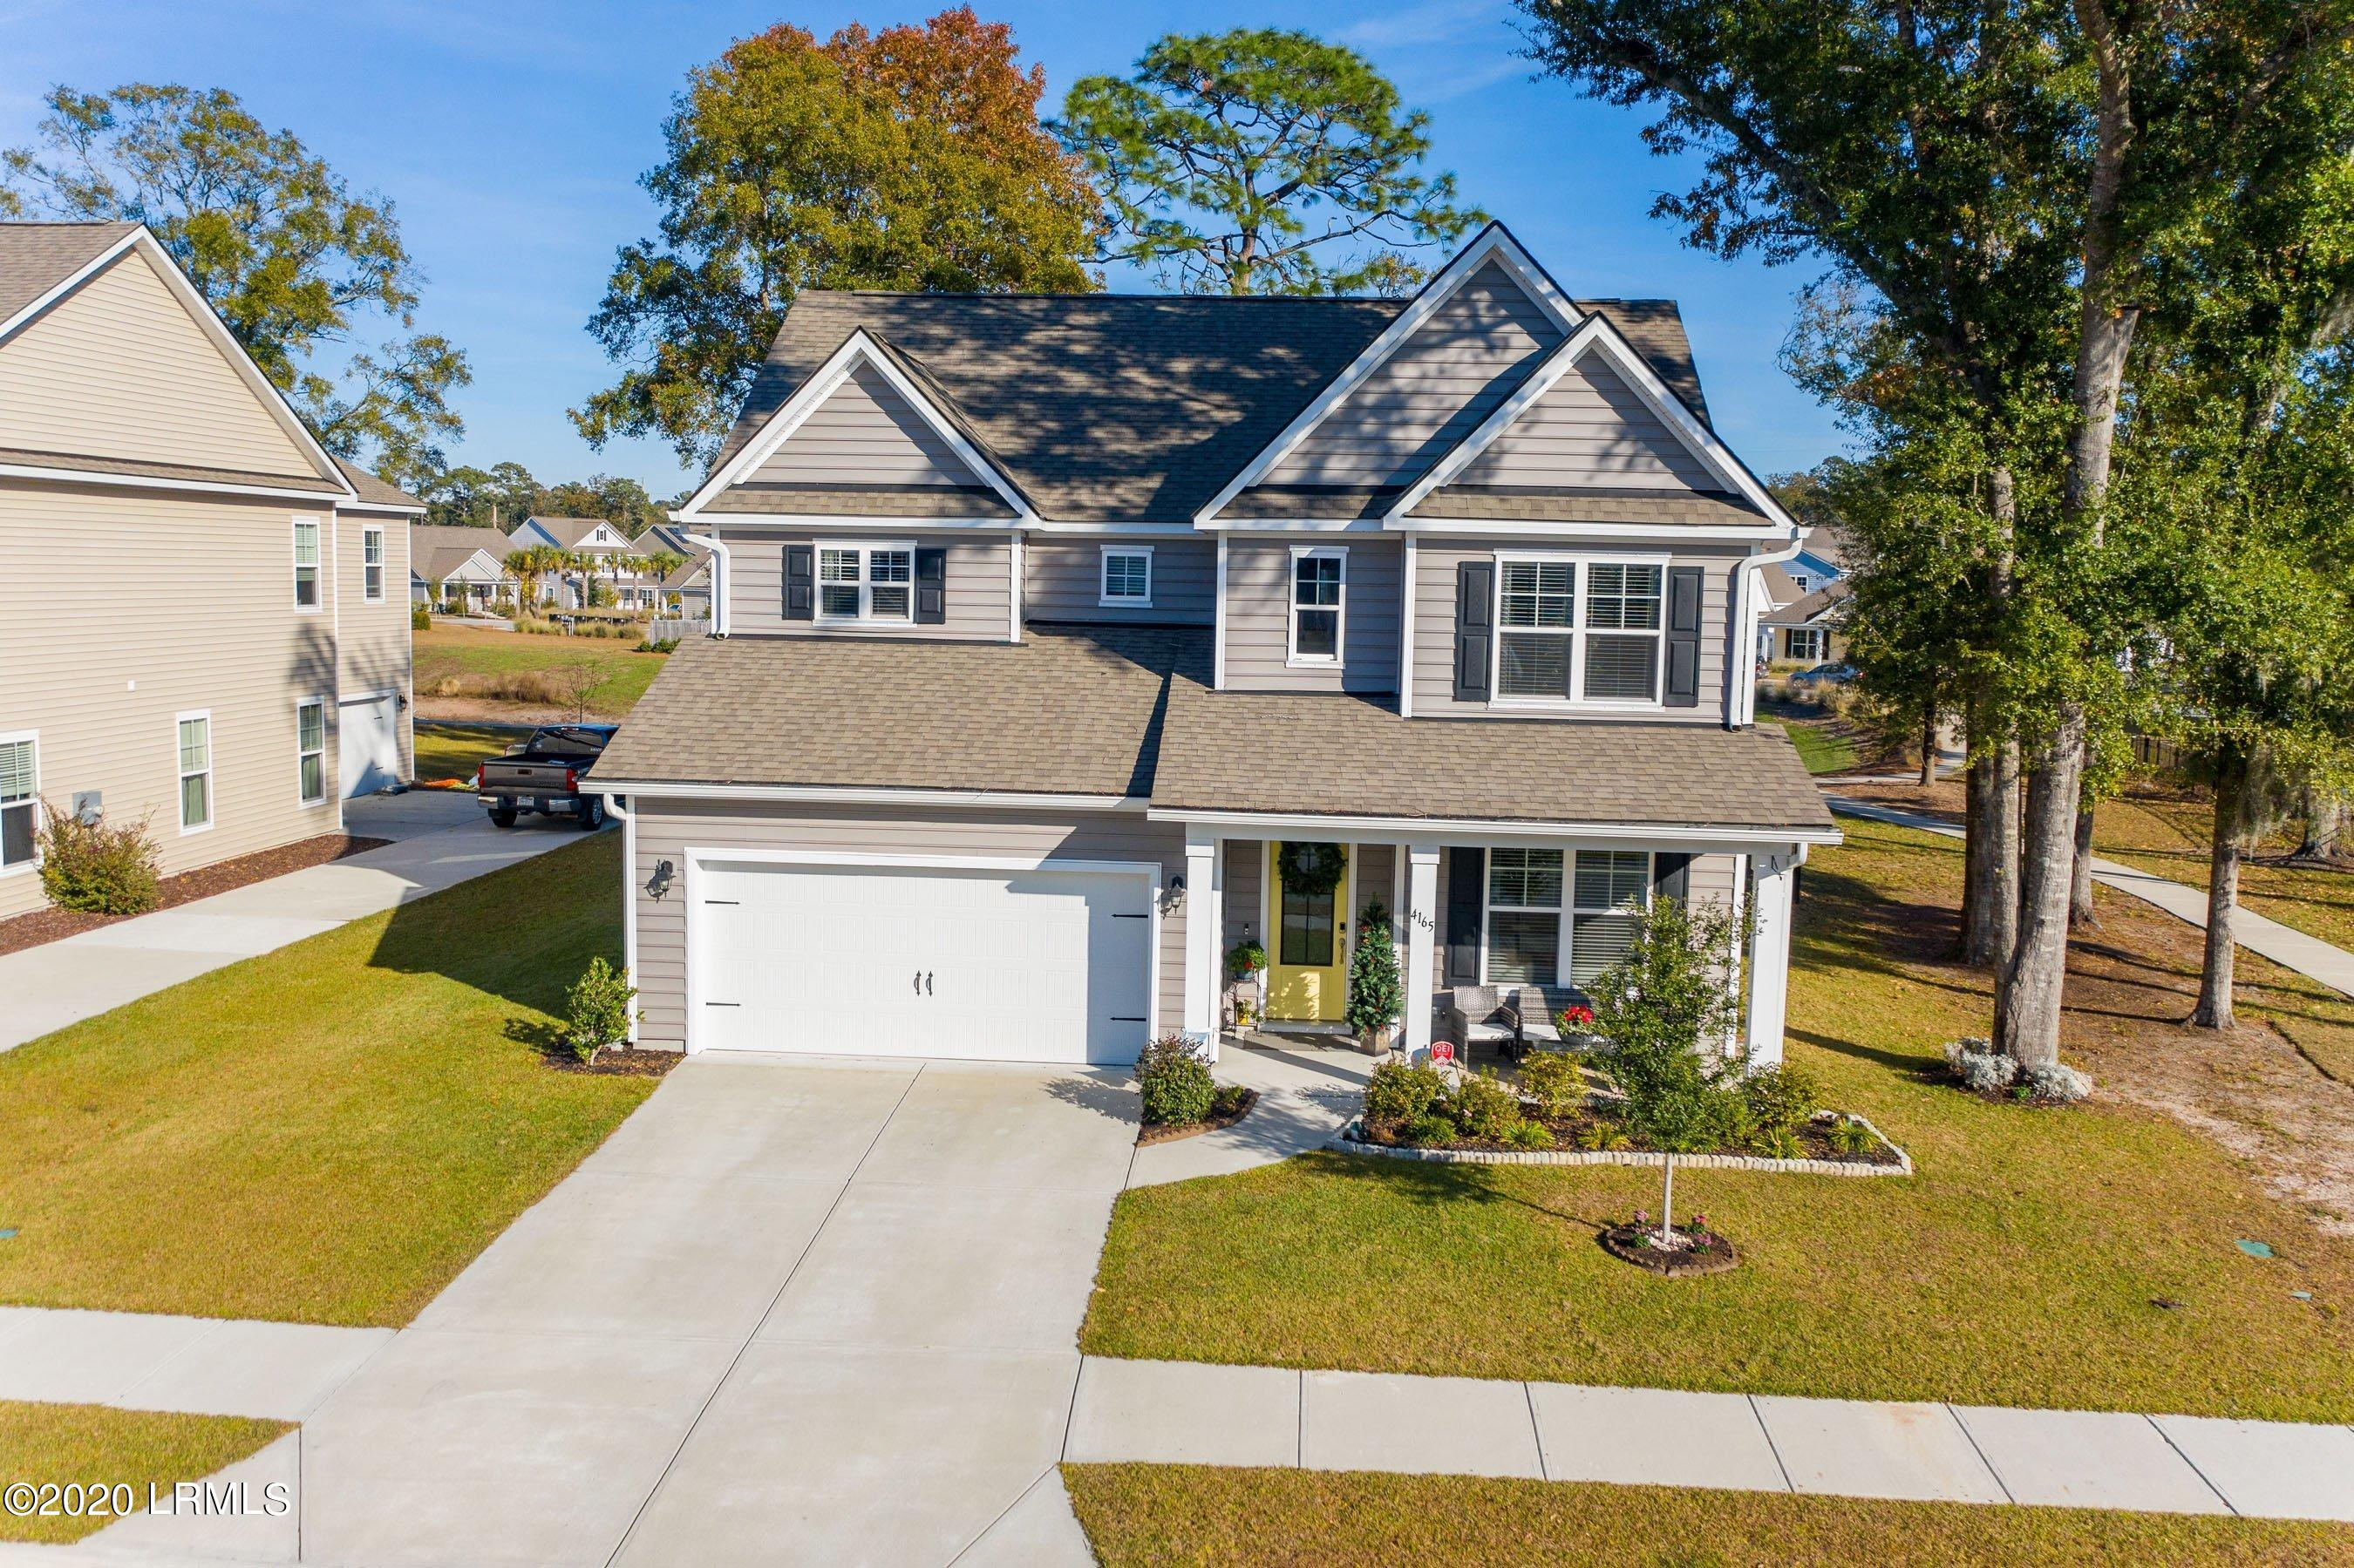 Photo of 4165 Sage Drive, Beaufort, SC 29907